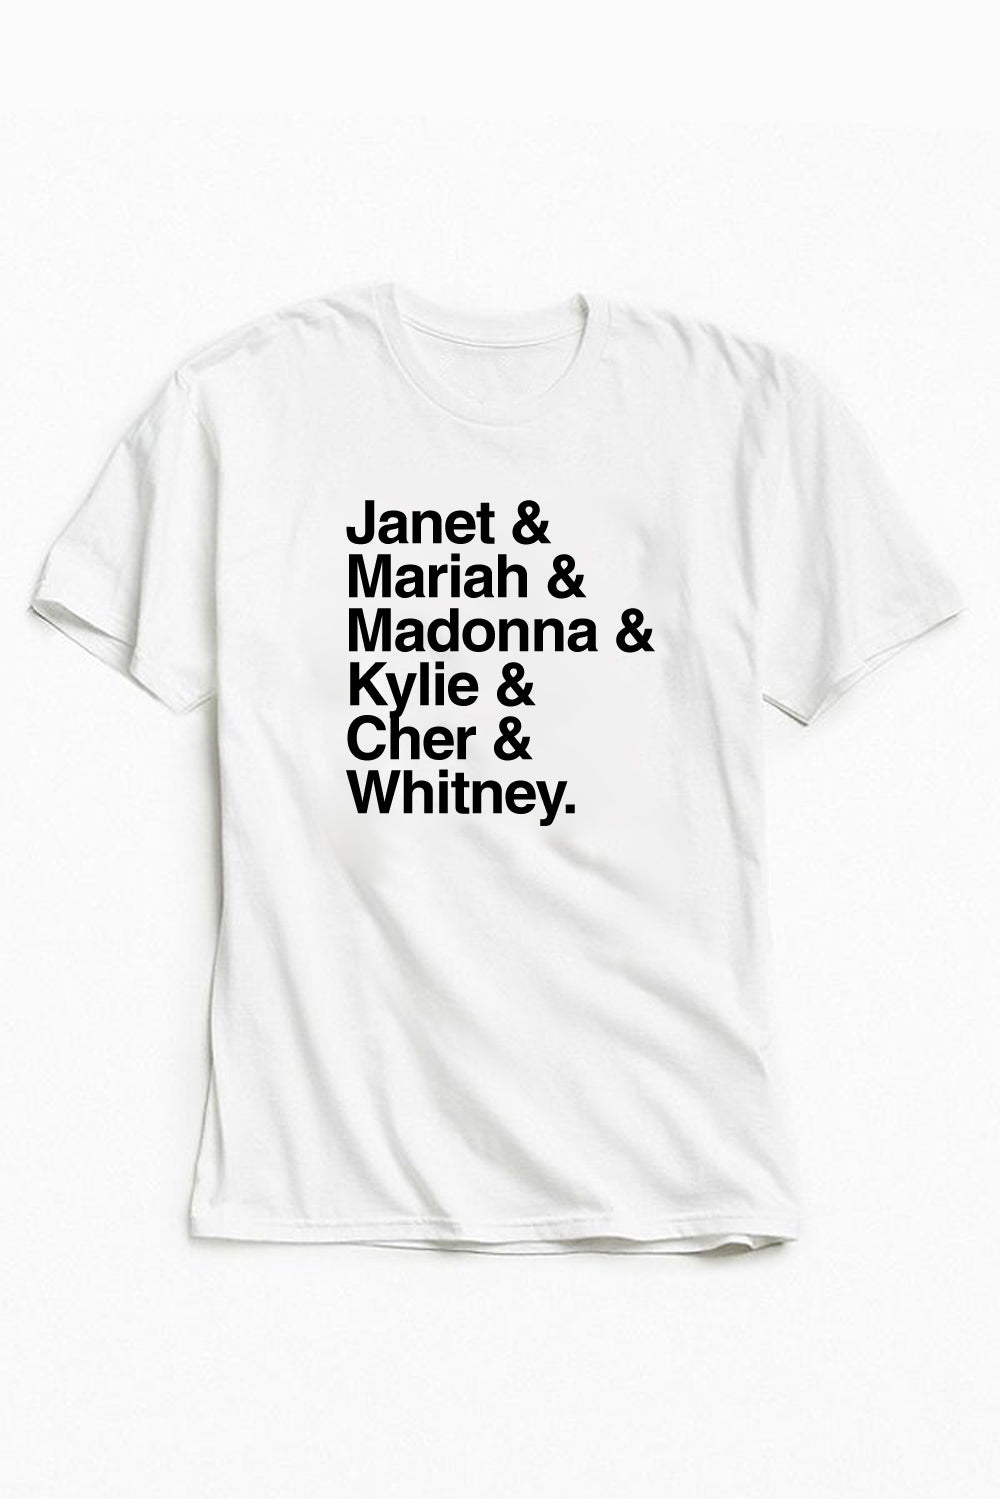 Janet Mariah Madonna Cher Kylie Whitney Tee - Totally Good Time